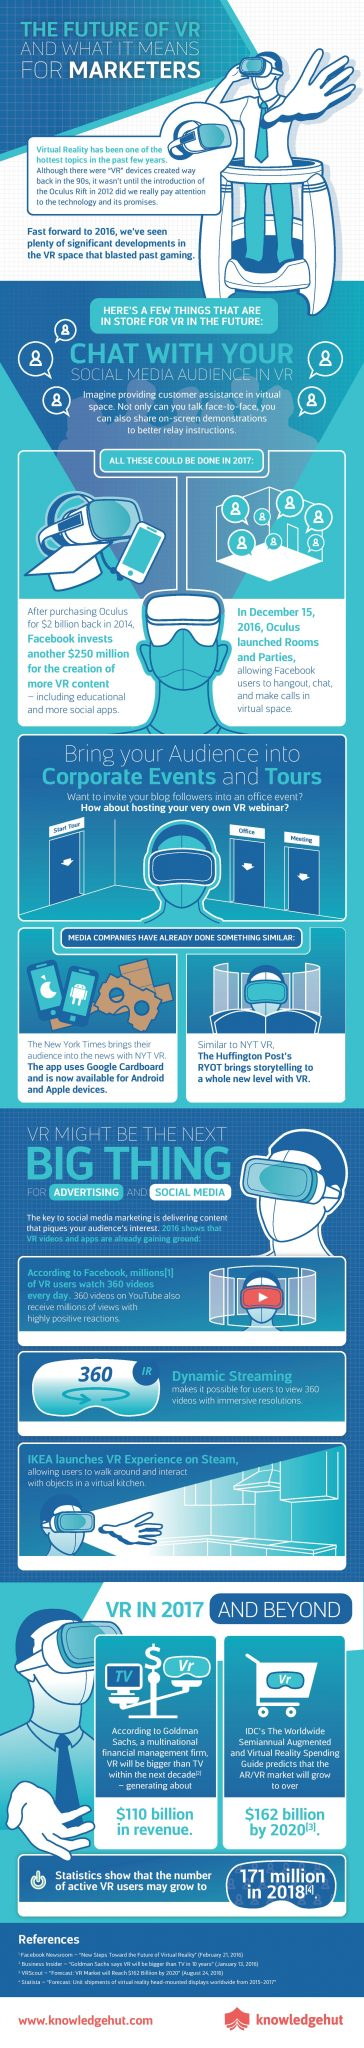 INFOGRAPHIC: 9 VR Marketing Campaigns Done Right